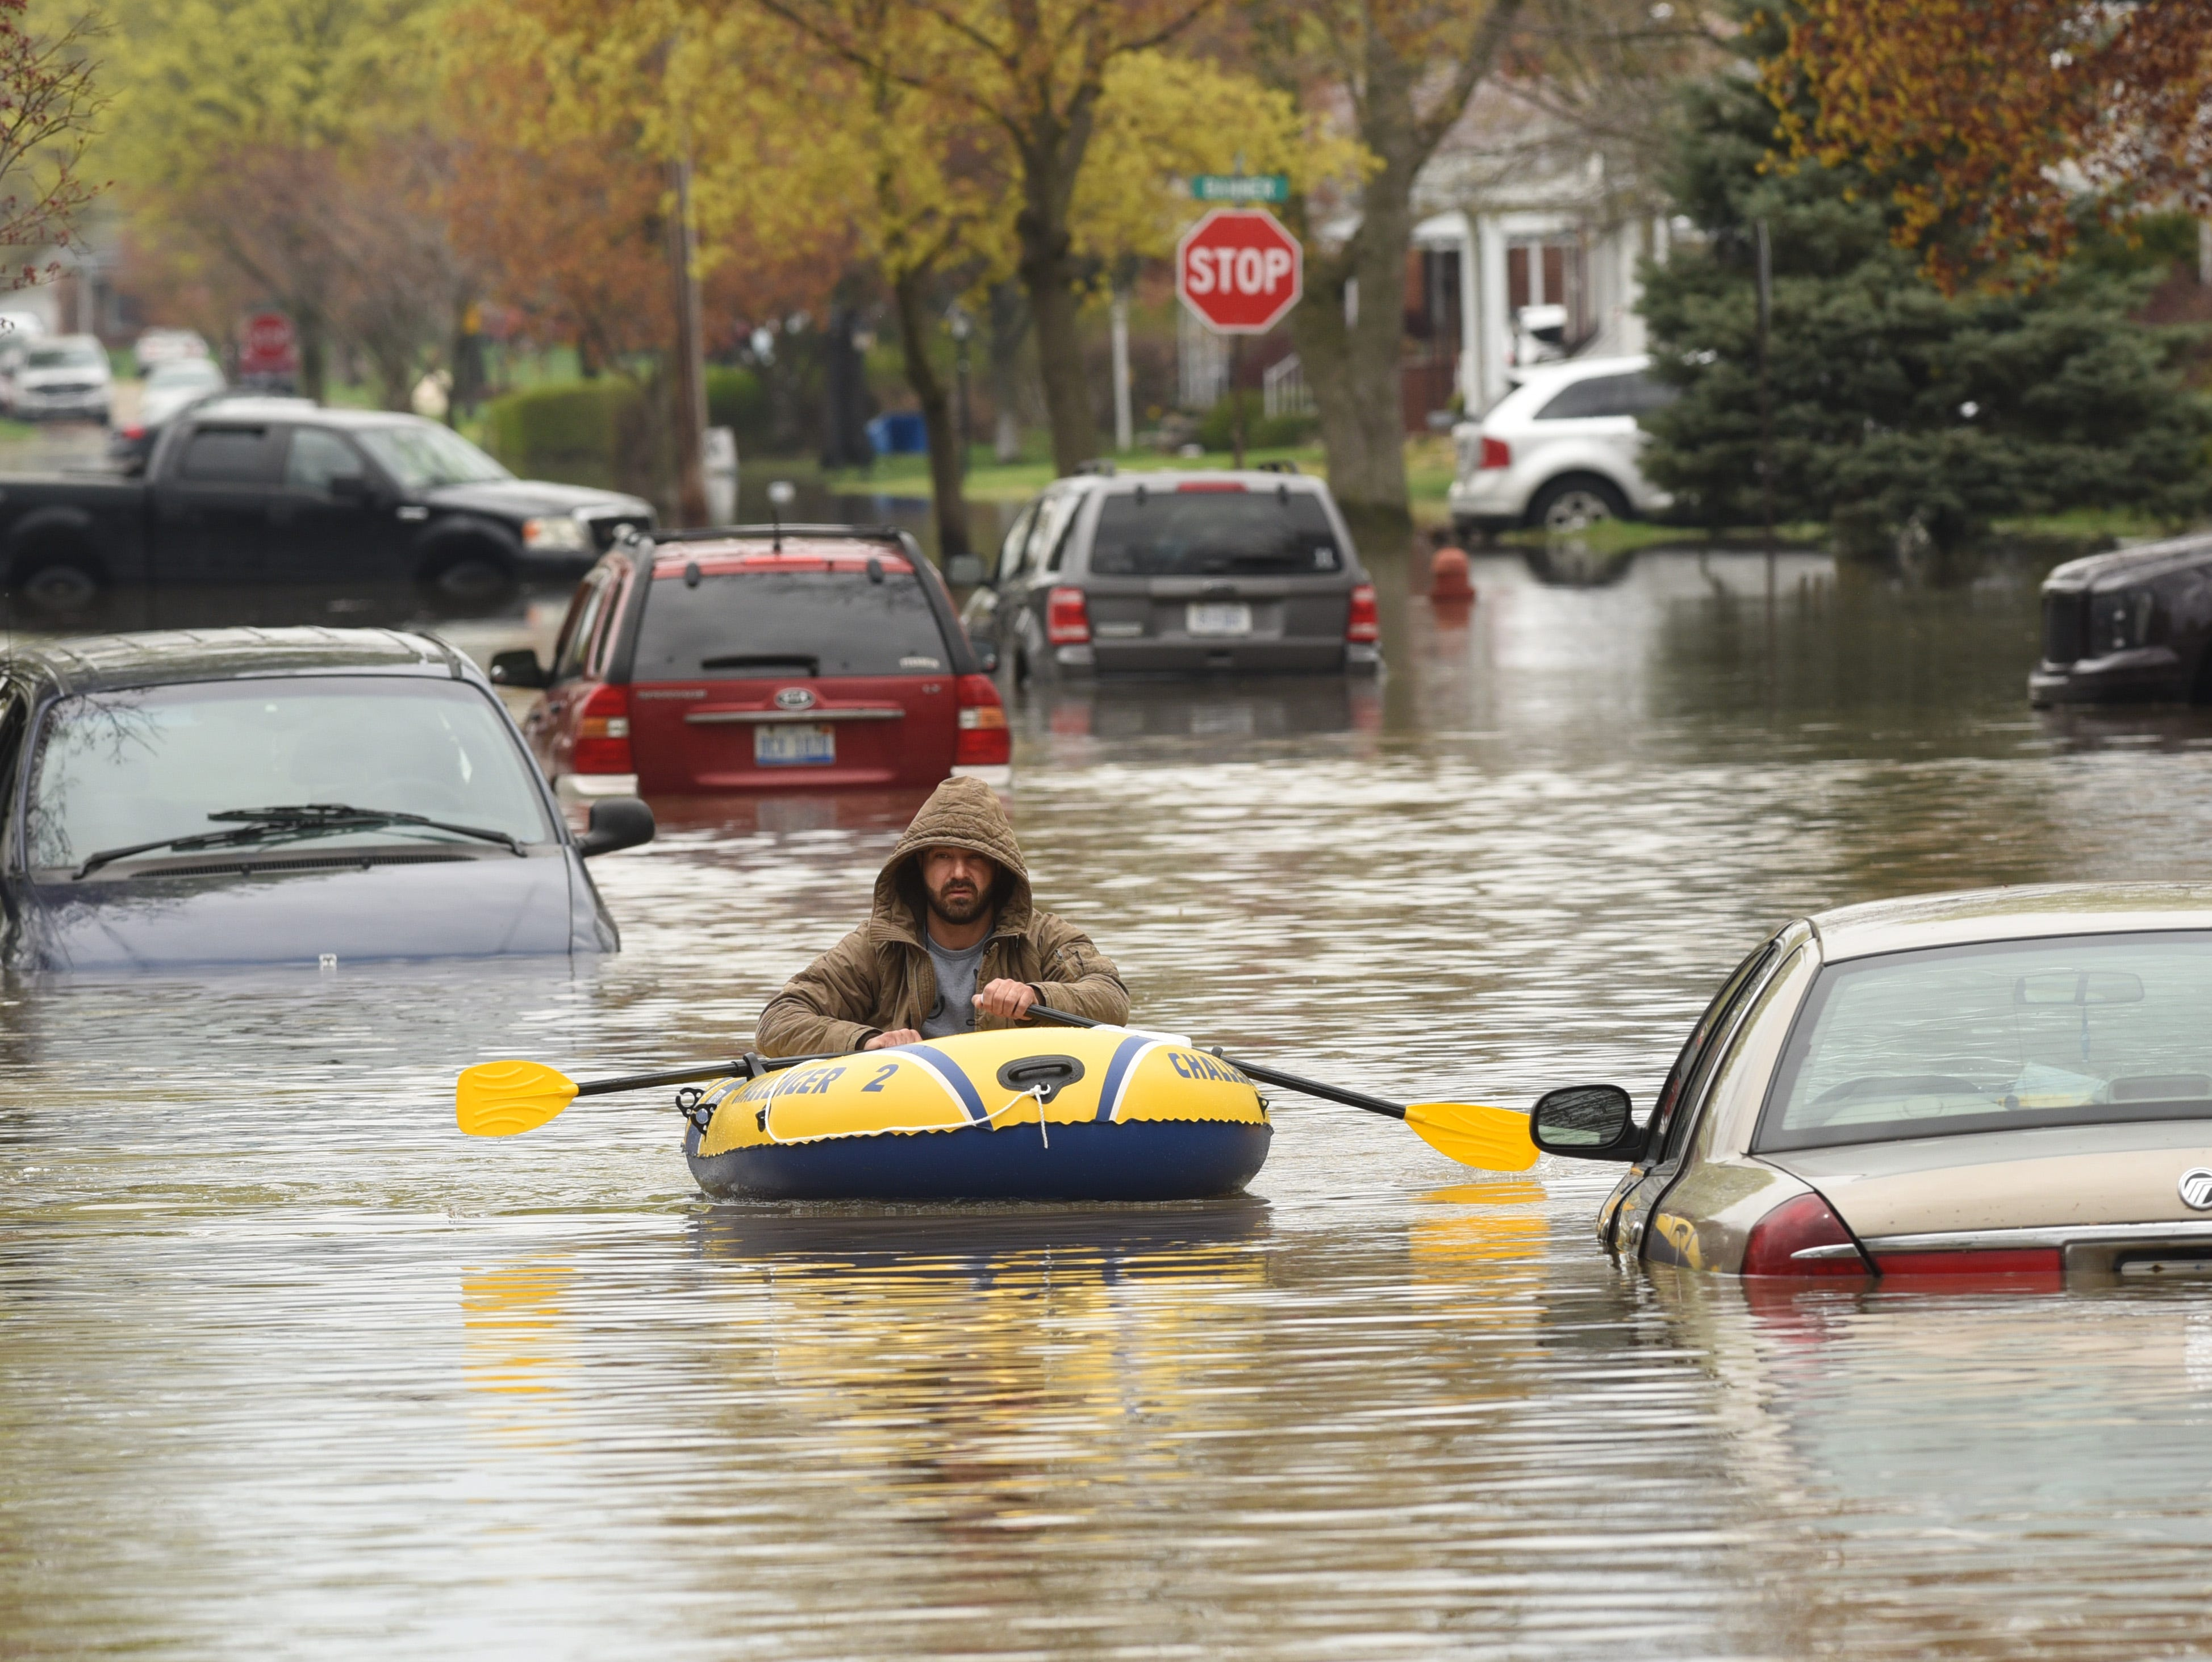 A Hanover Street resident paddles an inflatable boat around submerged vehicles on Currier Street in Dearborn Heights.